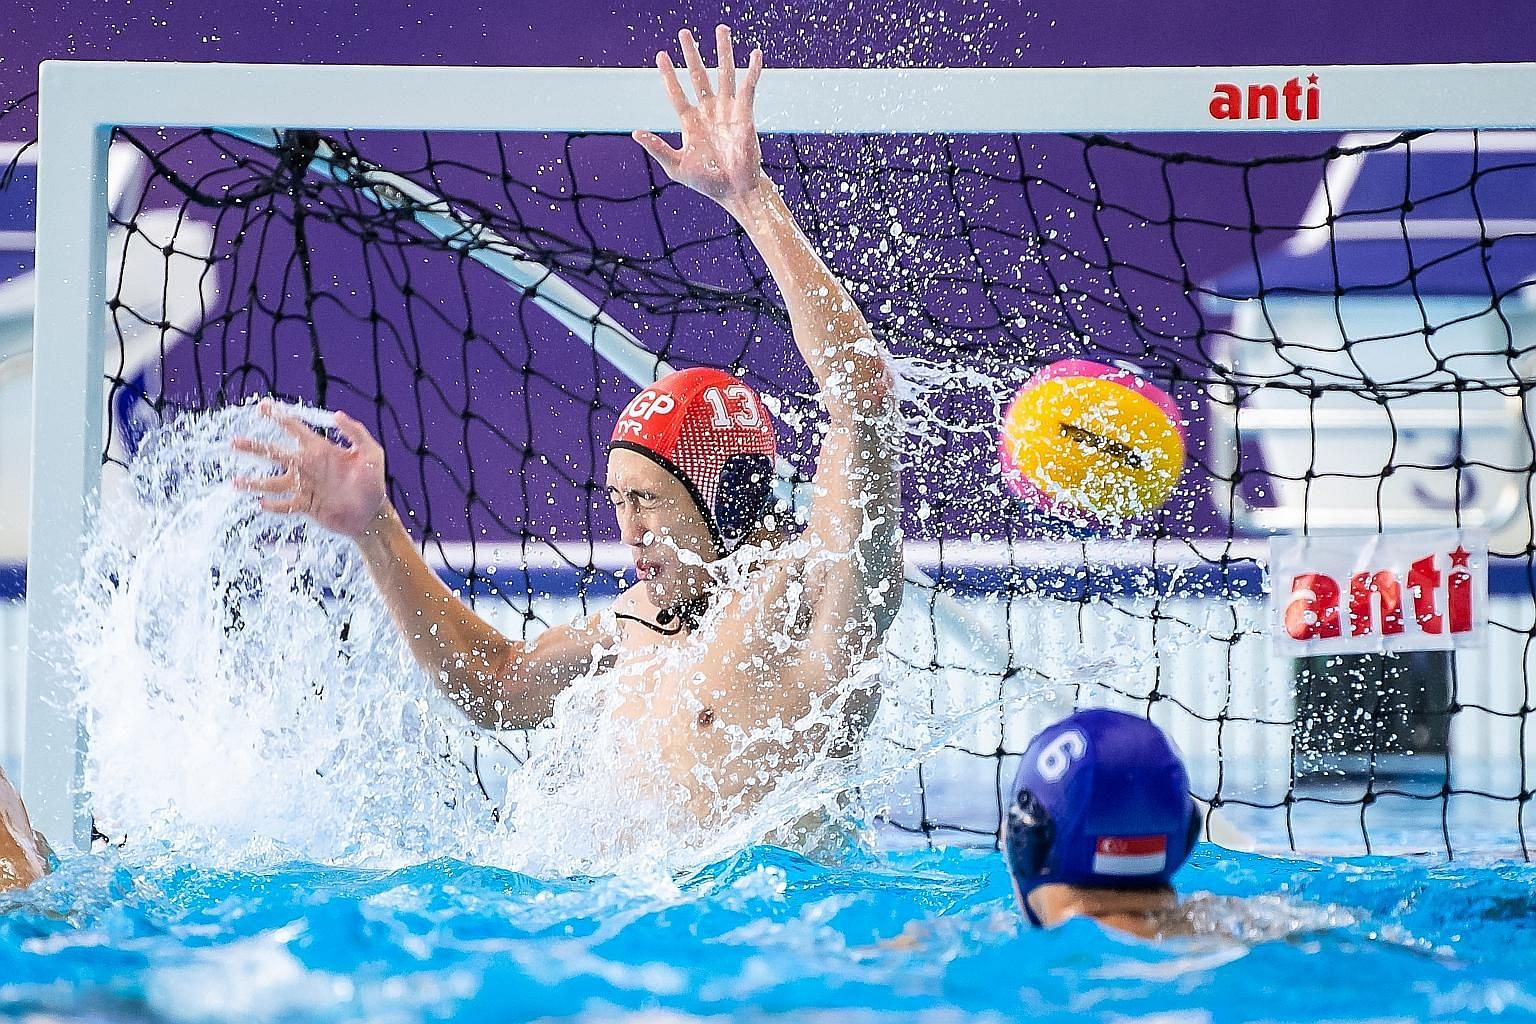 Left: The Singapore team were crestfallen after their first-ever defeat in the competition. Below: Singapore goalkeeper Lee Kai Yang is helpless to prevent one of the seven goals scored past him by the Indonesian team, who can seal the gold medal wit